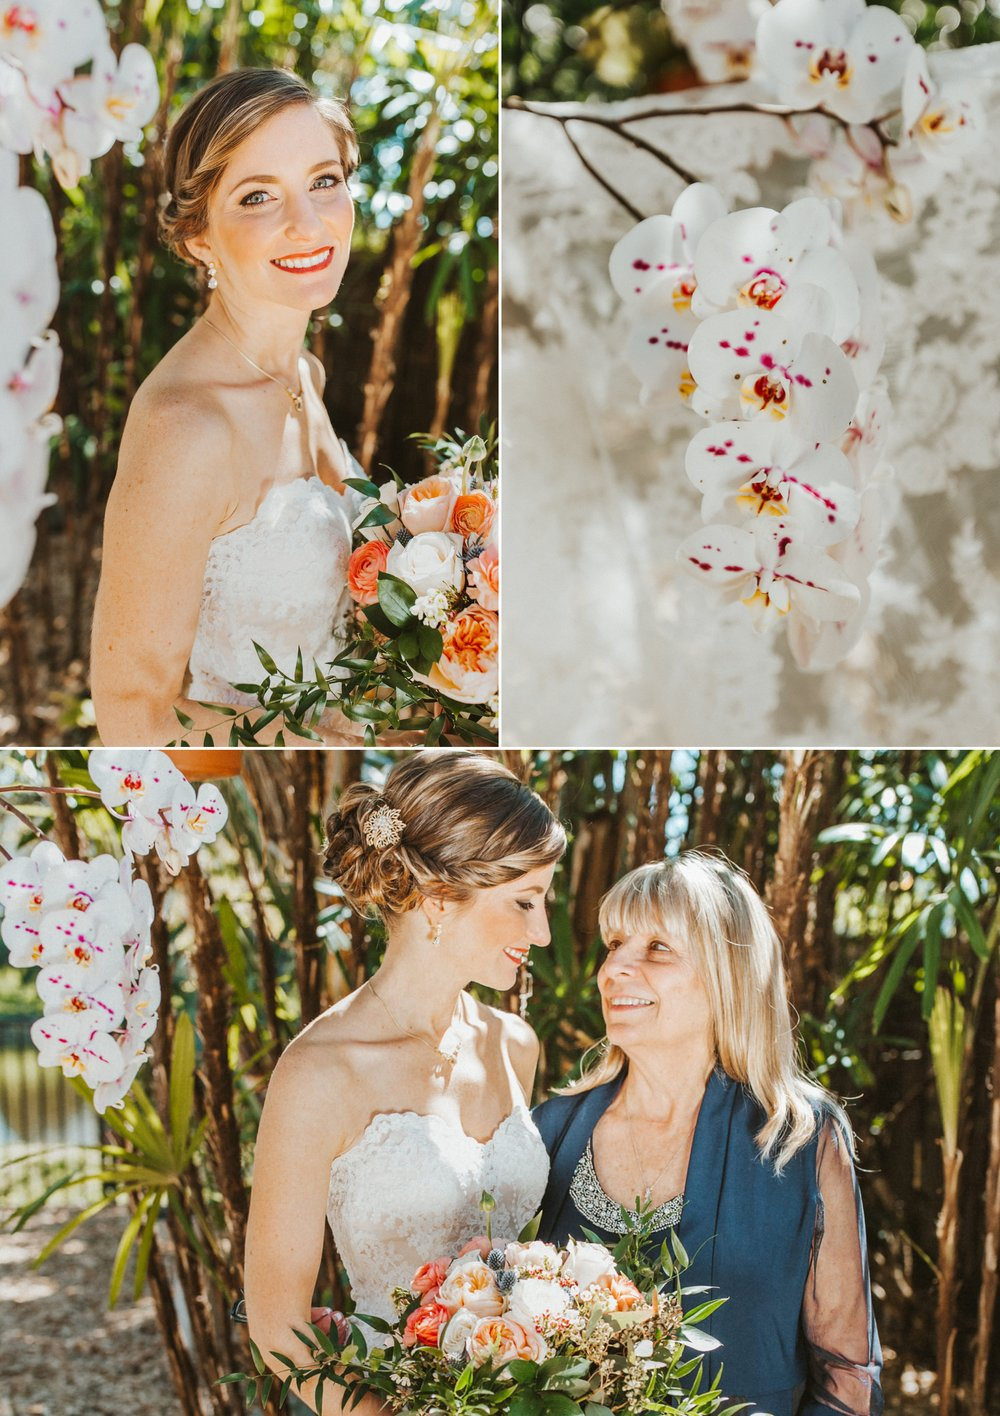 Winter Park farmers market wedding- bohemian chic floral wedding photography by Shaina DeCiryan3.jpg